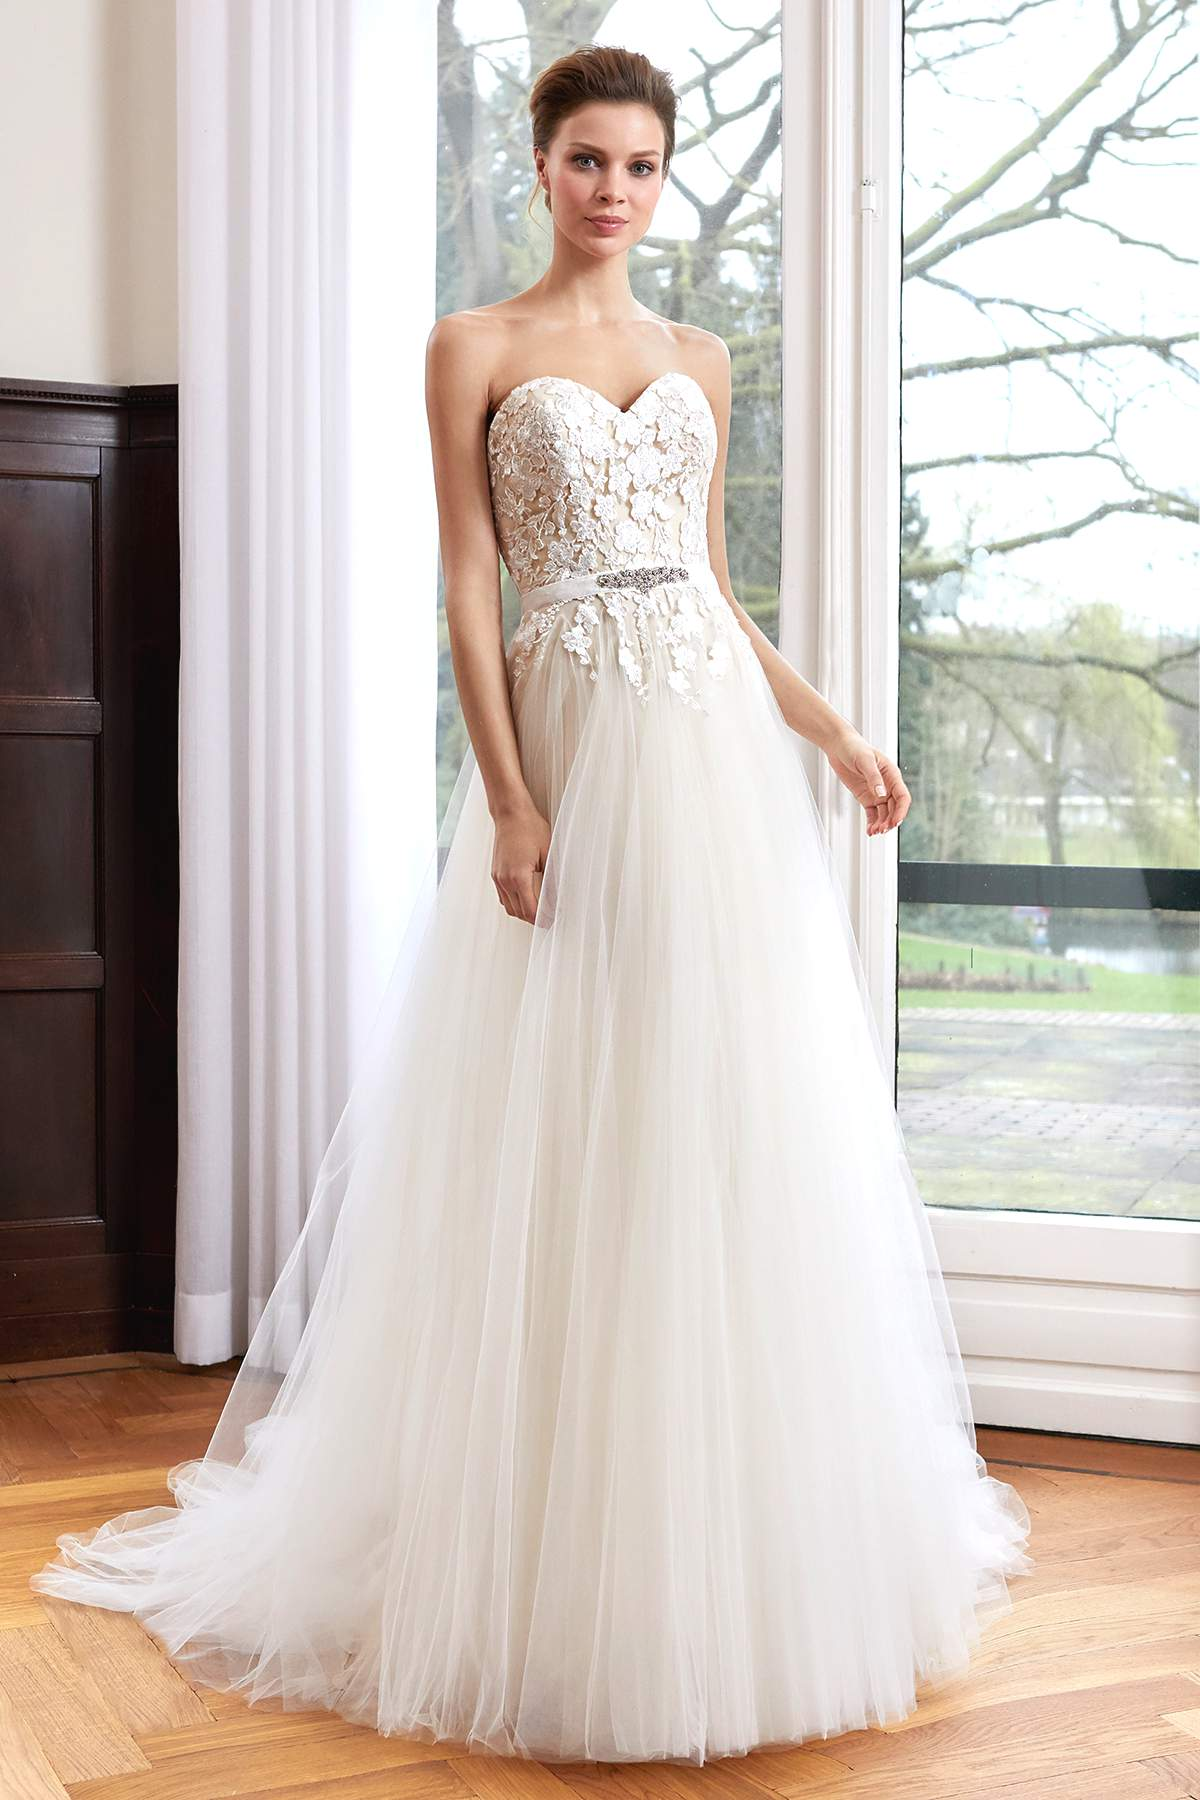 Amber by Modeca - Find Your Dream Dress